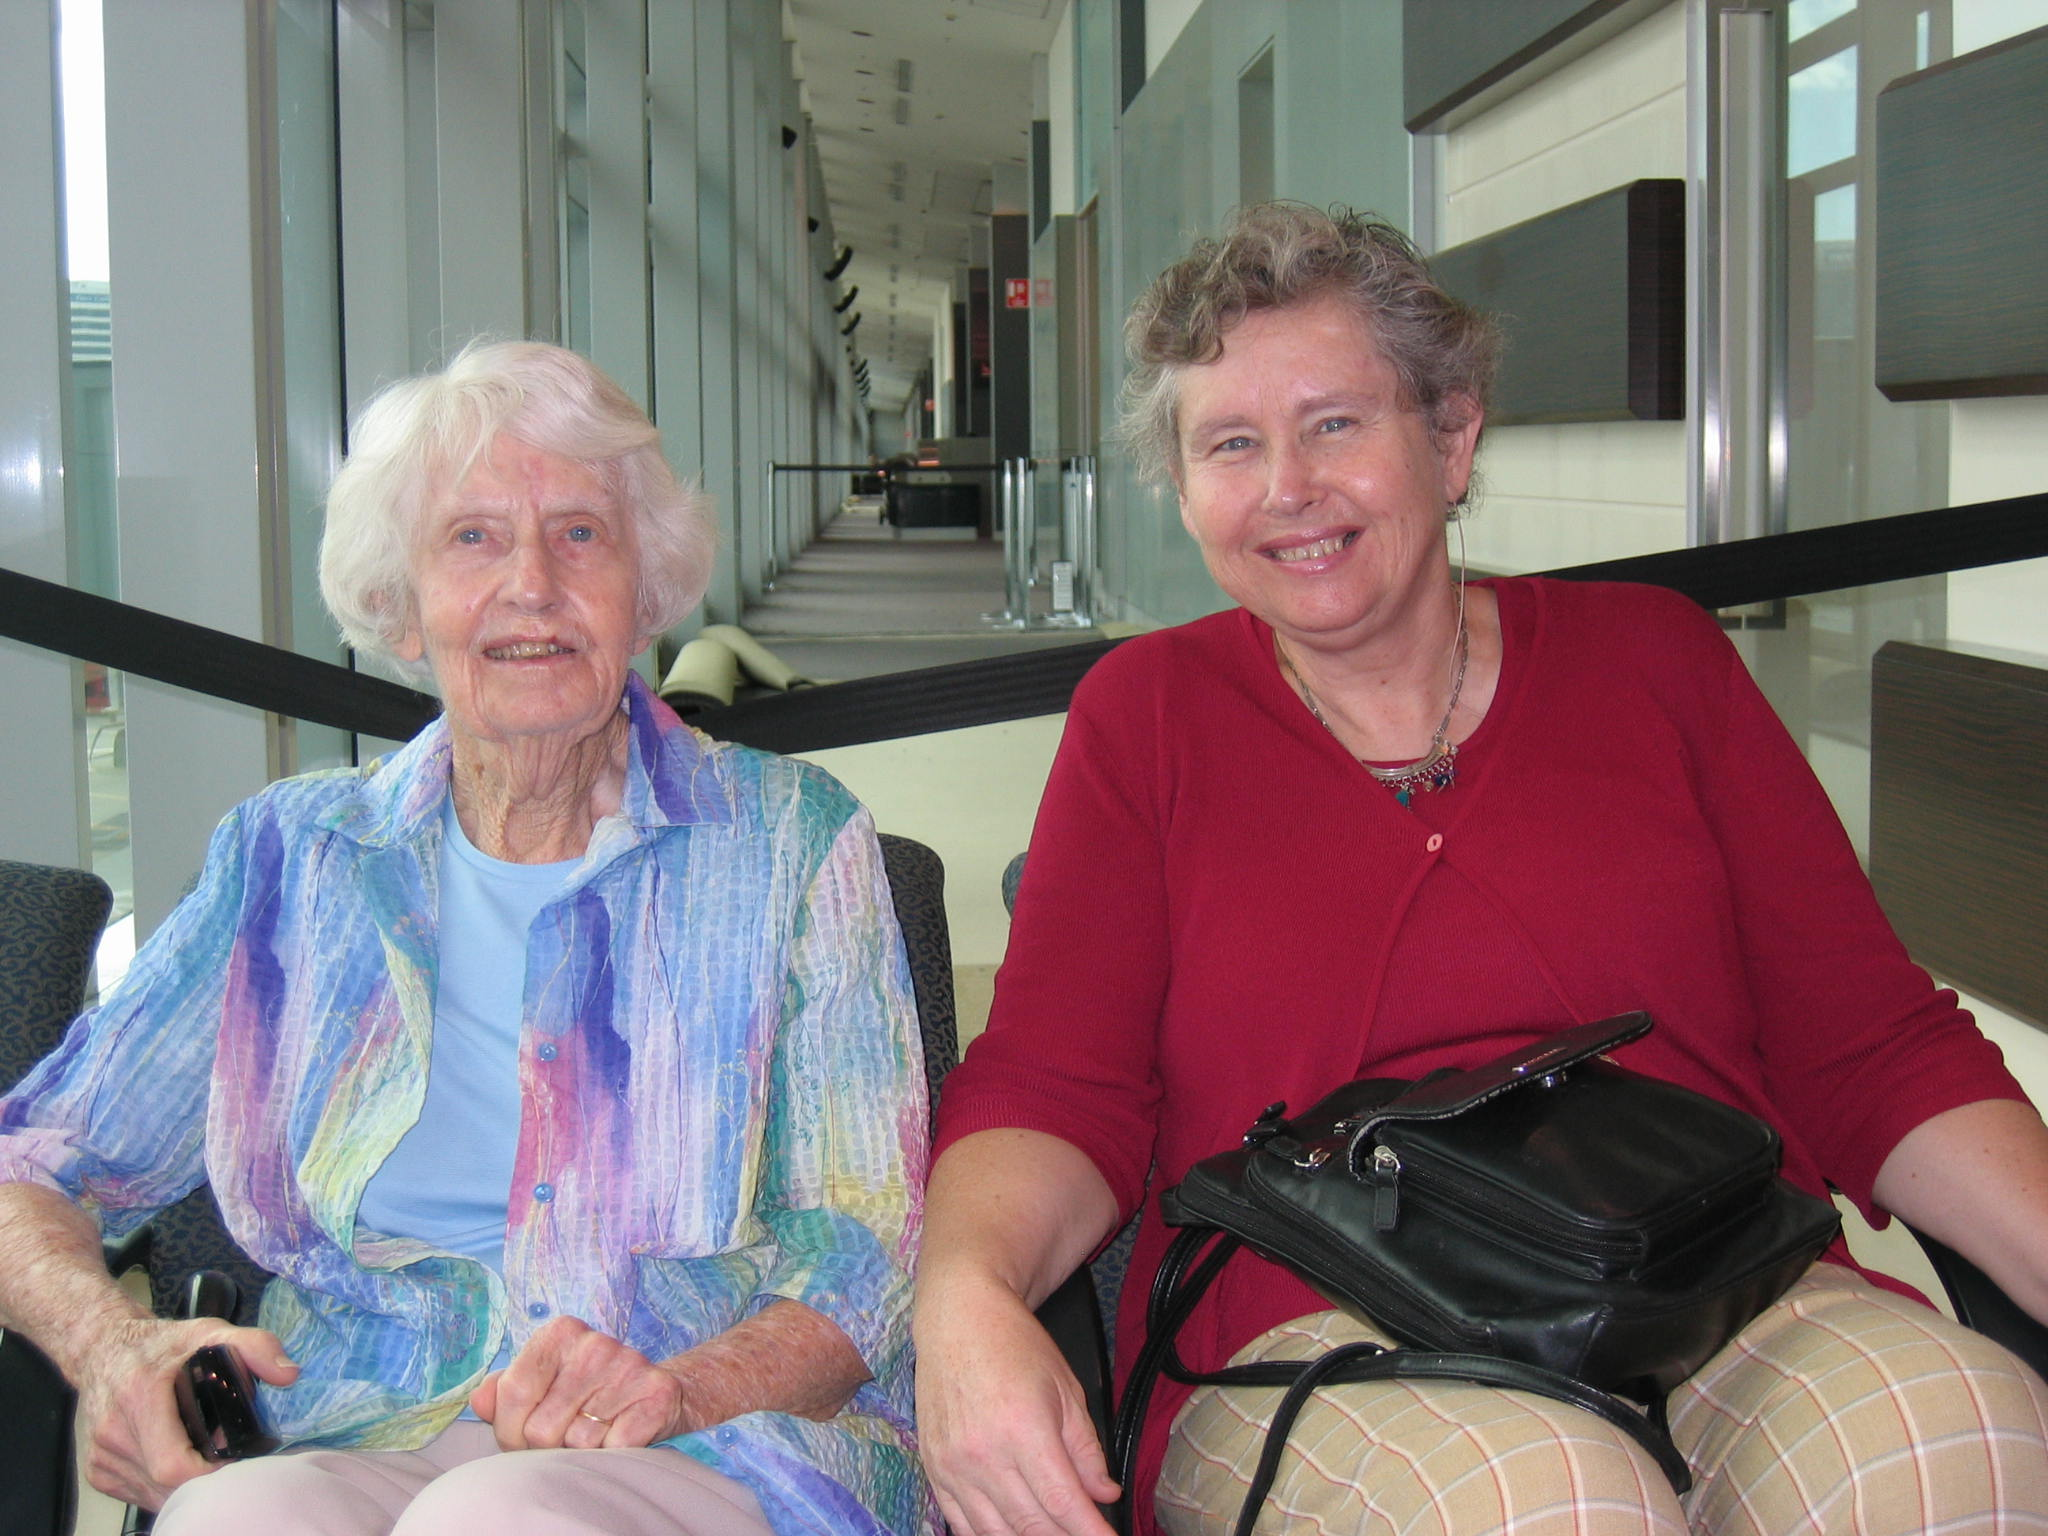 Photo of Helen (right) with her elderly mother (left) sitting down at an airport.